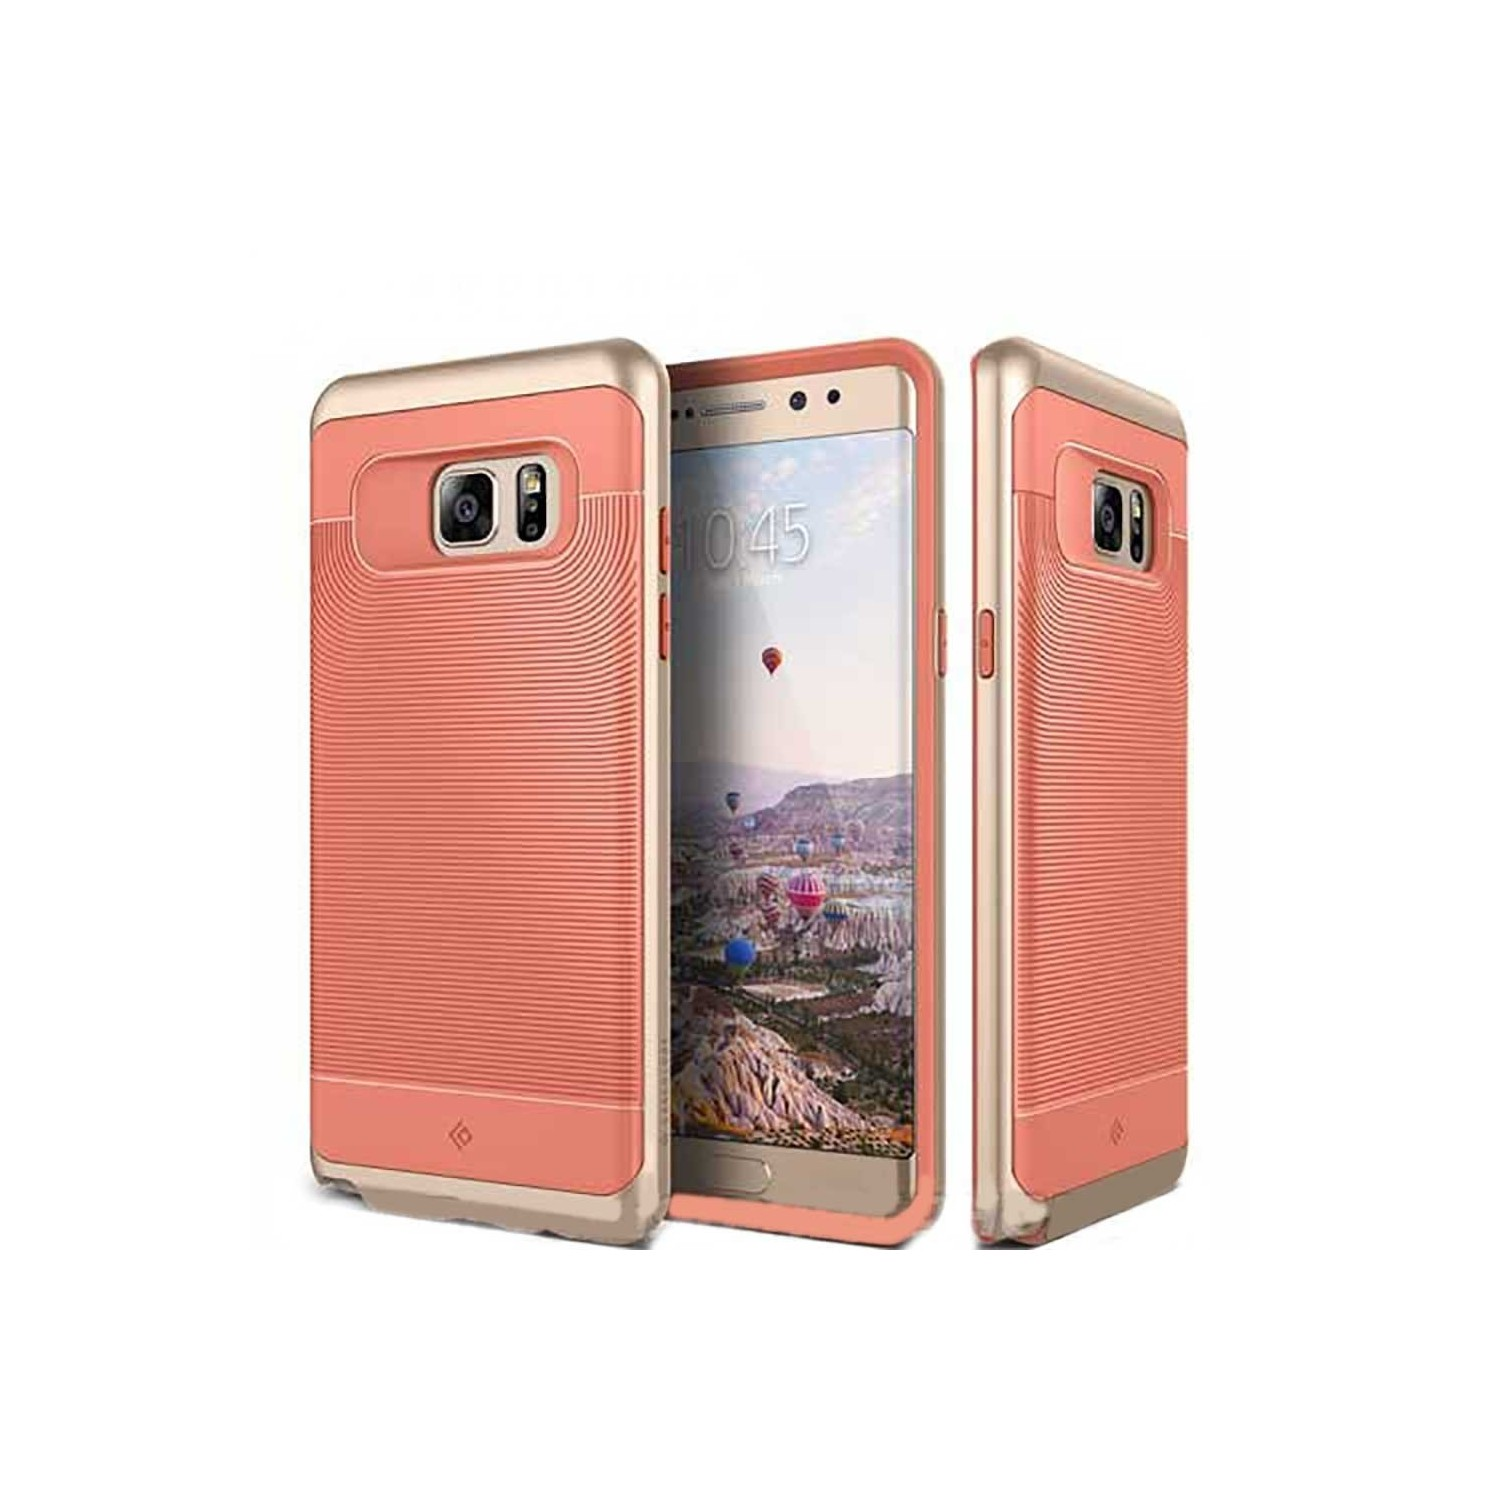 Case - CASEOLOGY Samsung Note 7 - Wavelength - Coral Pink